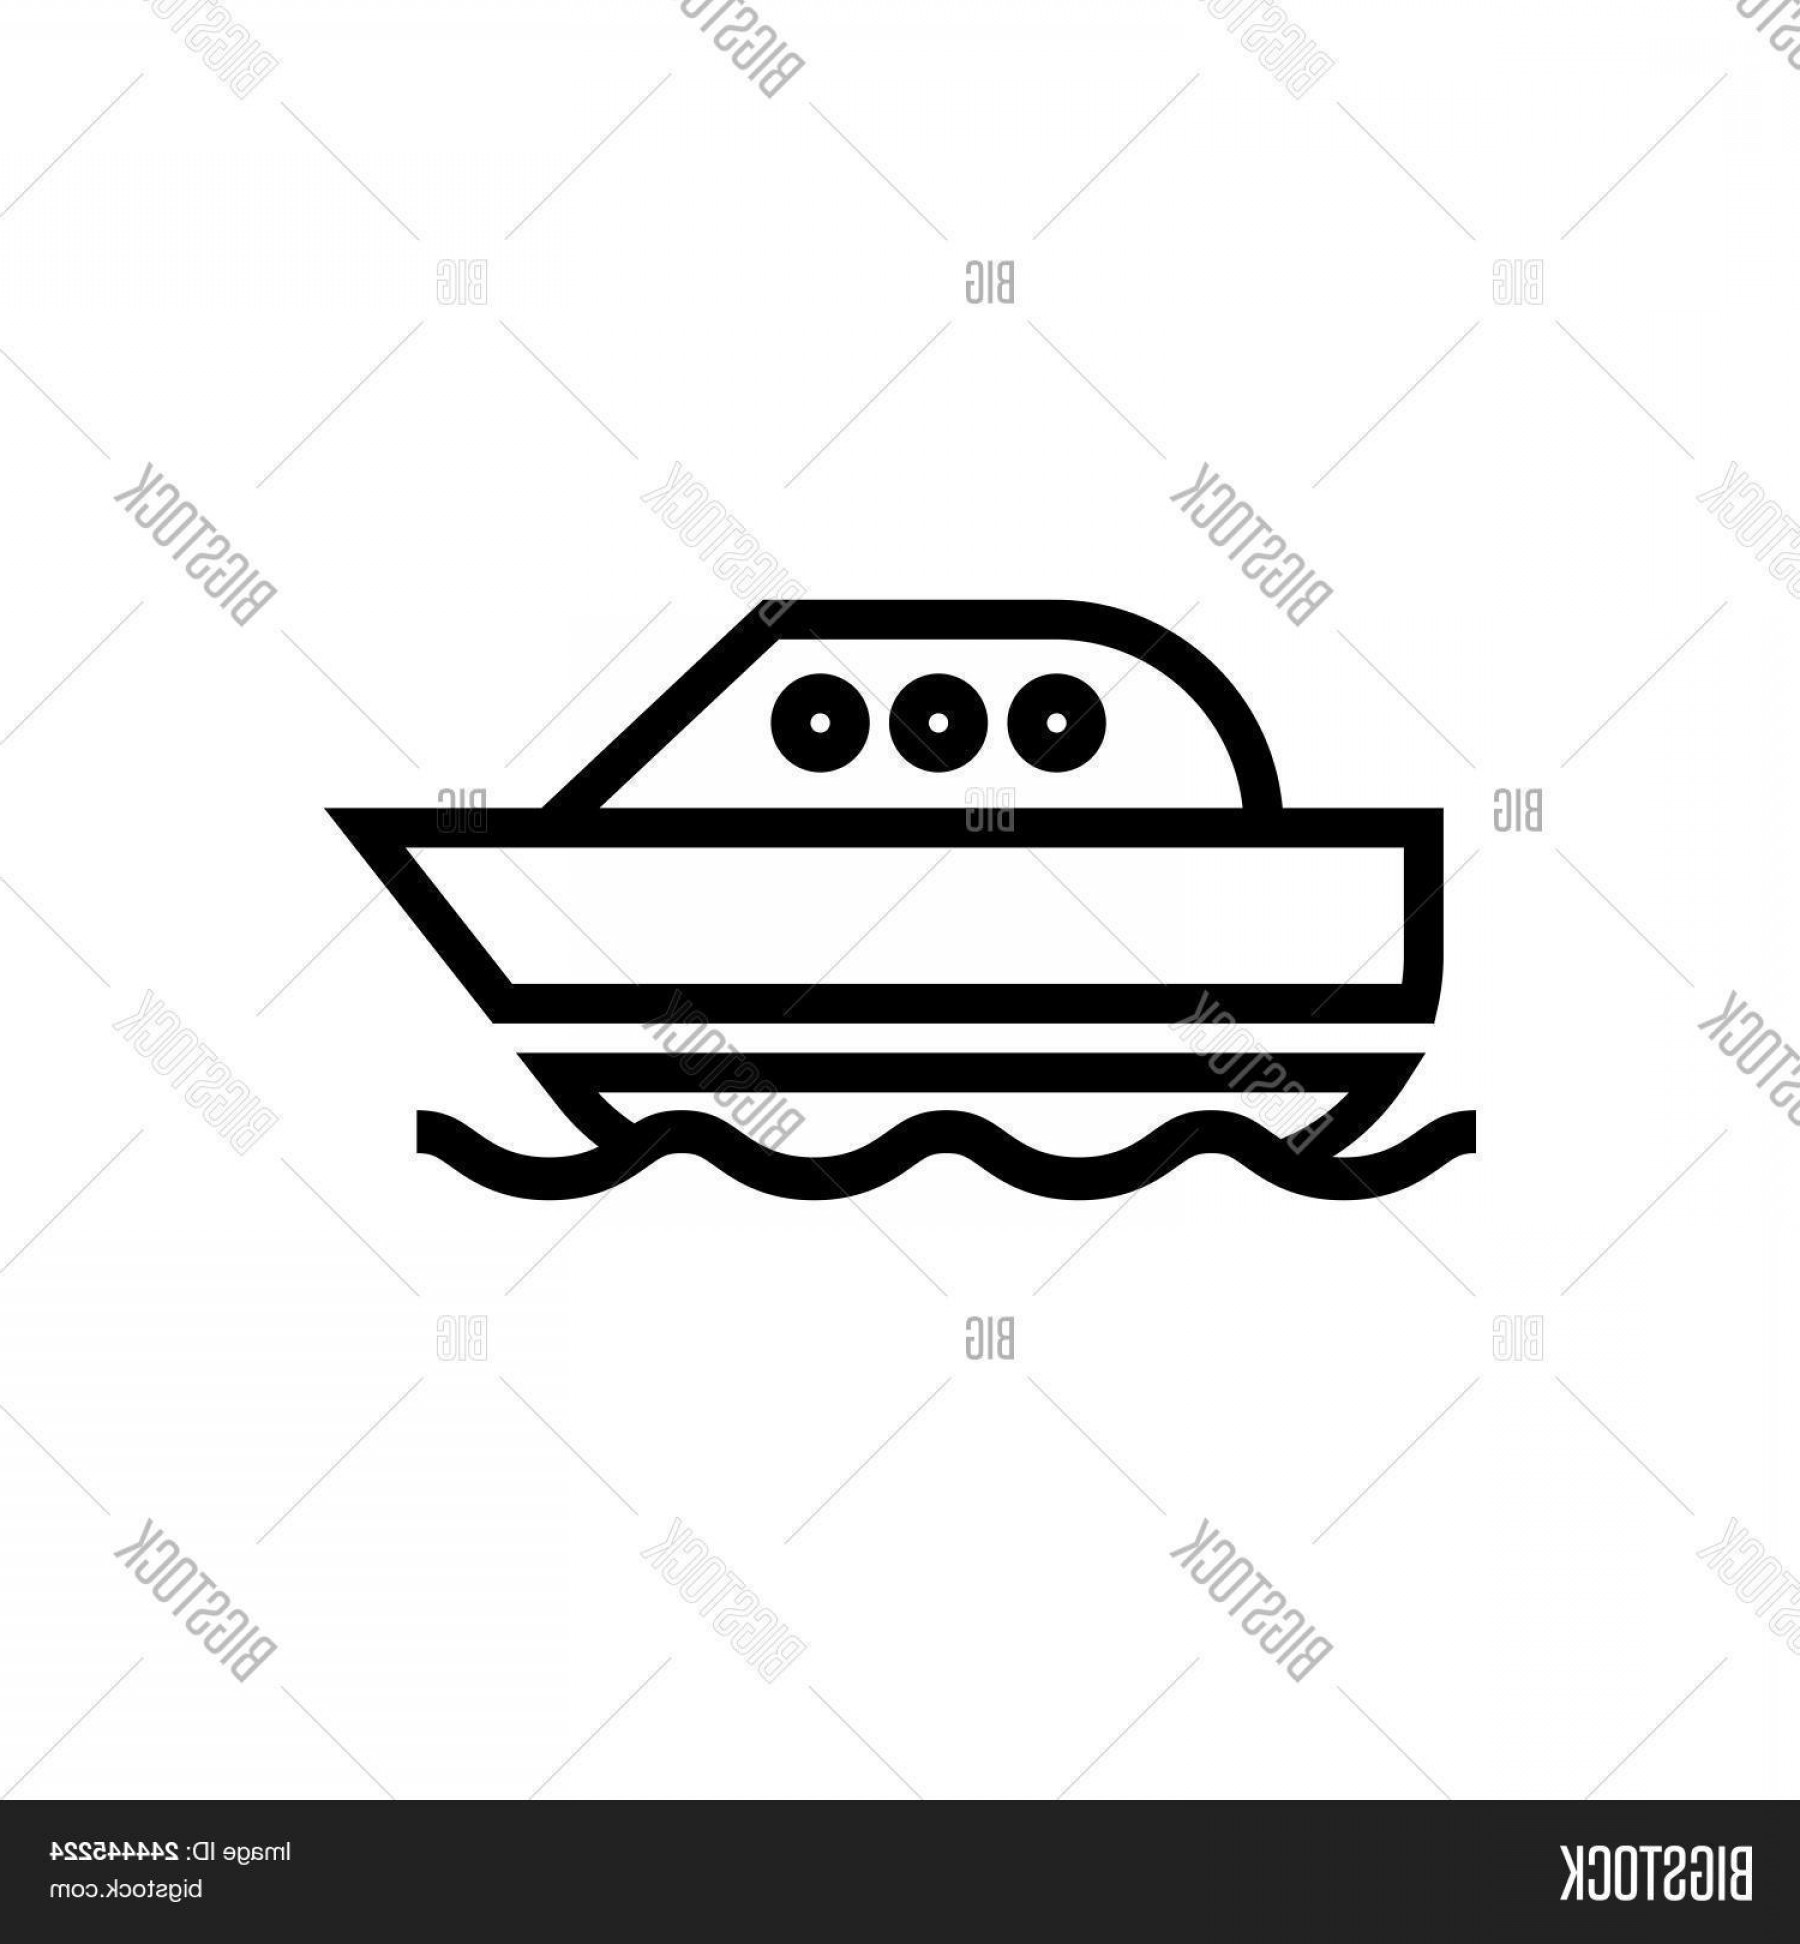 Boat Vector Art Graphics: Stock Vector Floating Boat Vector Icon On White Background Floating Boat Modern Icon For Graphic And Web Design